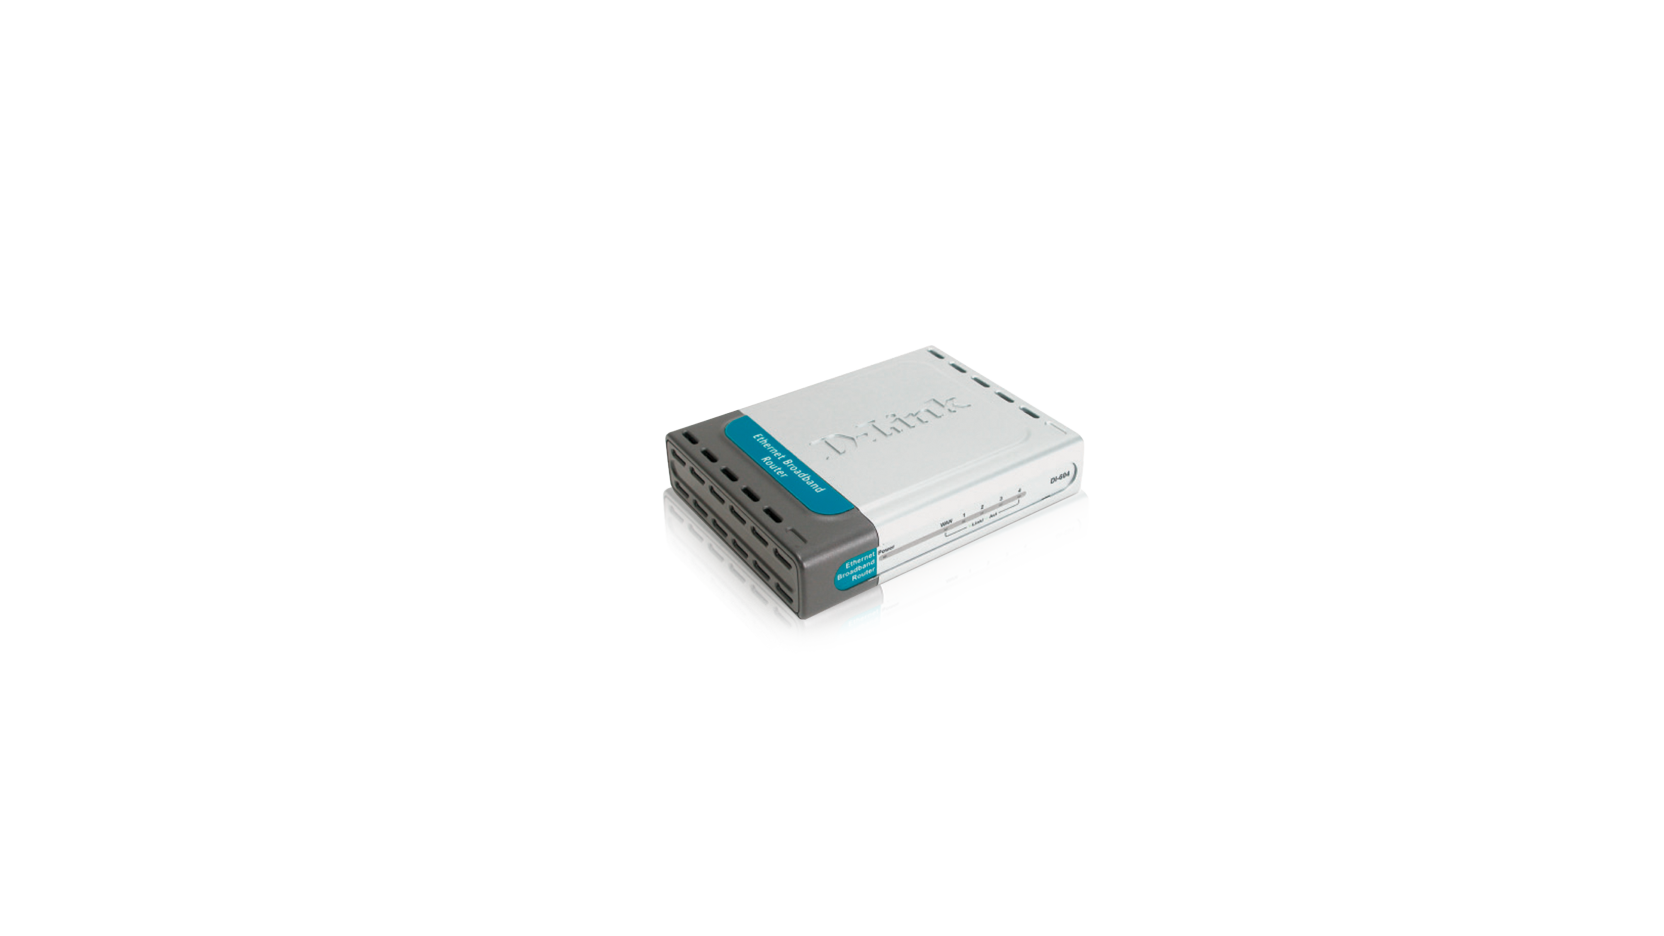 D-Link DI-604UP Router Drivers (2019)